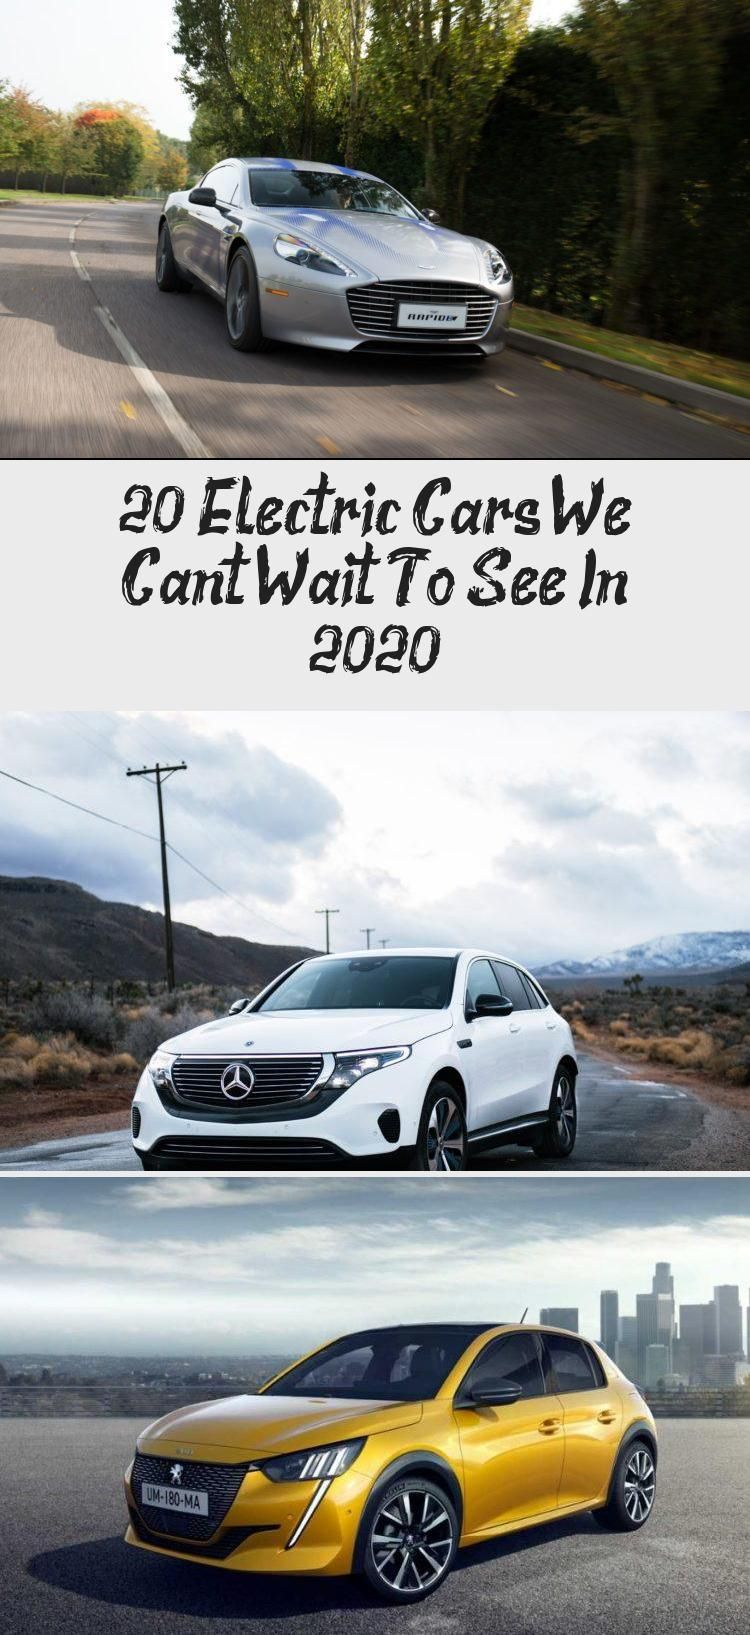 20 Electric Cars We Can't Wait To See In 2020 Electric